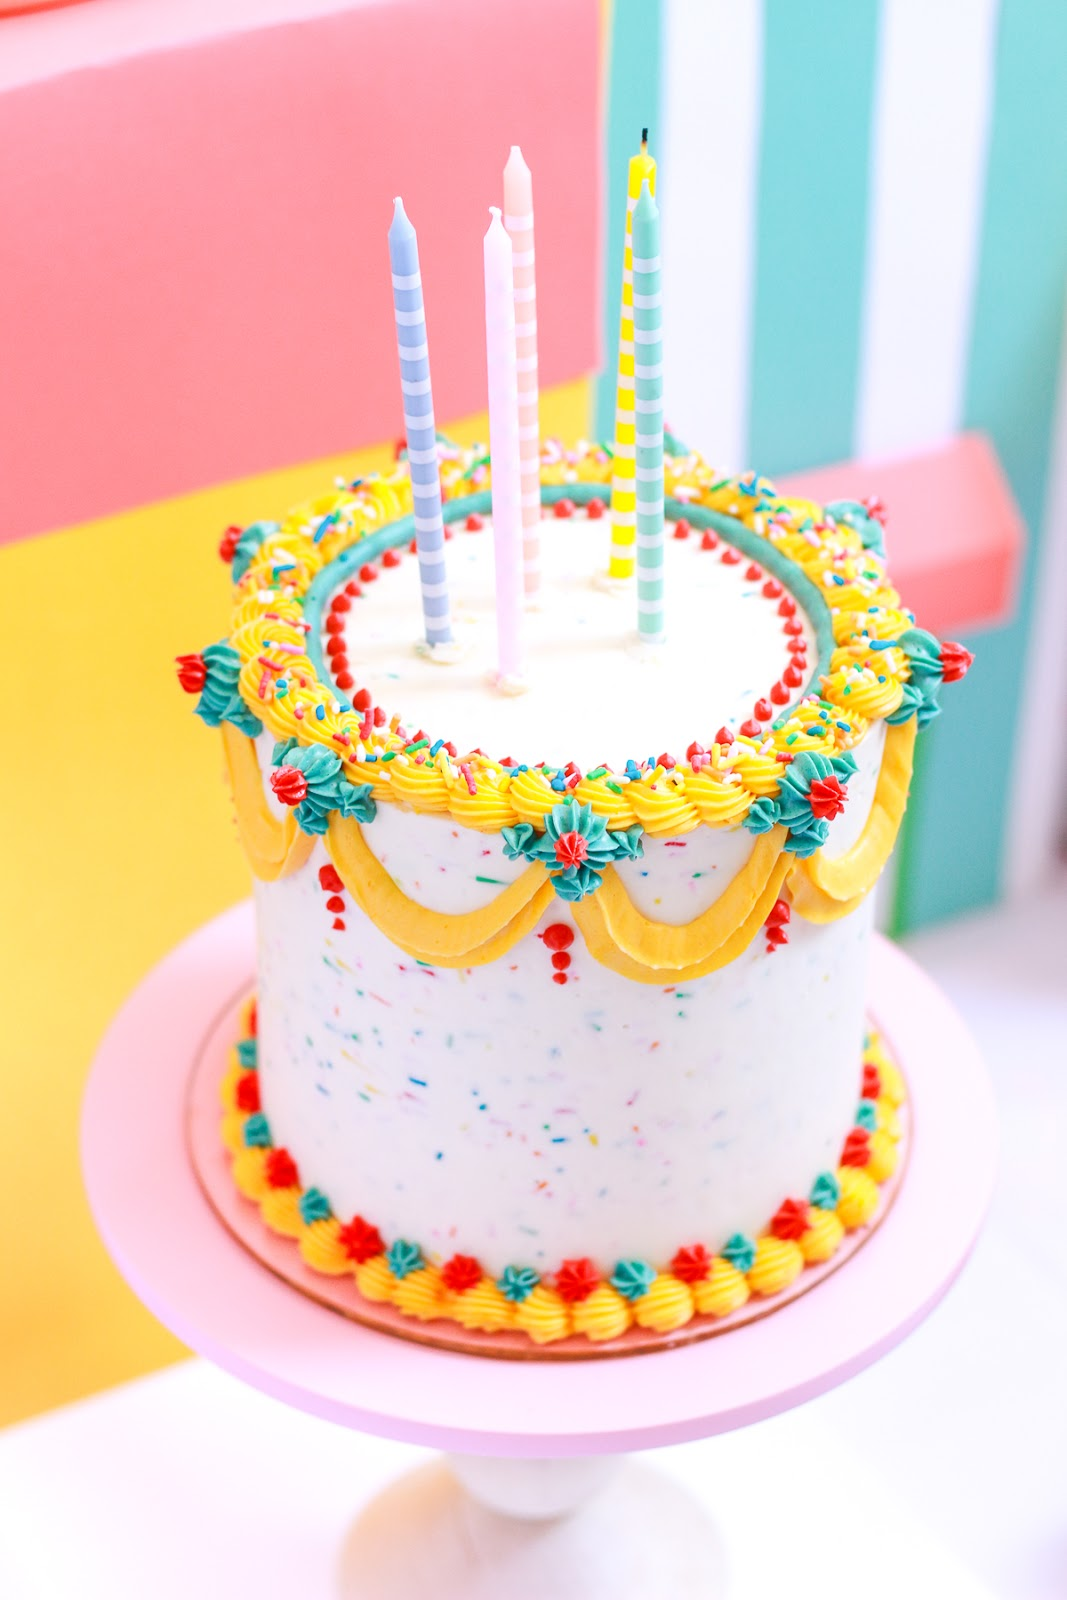 BOLO RETRO COLORIDO BUTTERCREAM FESTA INFANTIL THAIS TERRA BLOG DO MATH